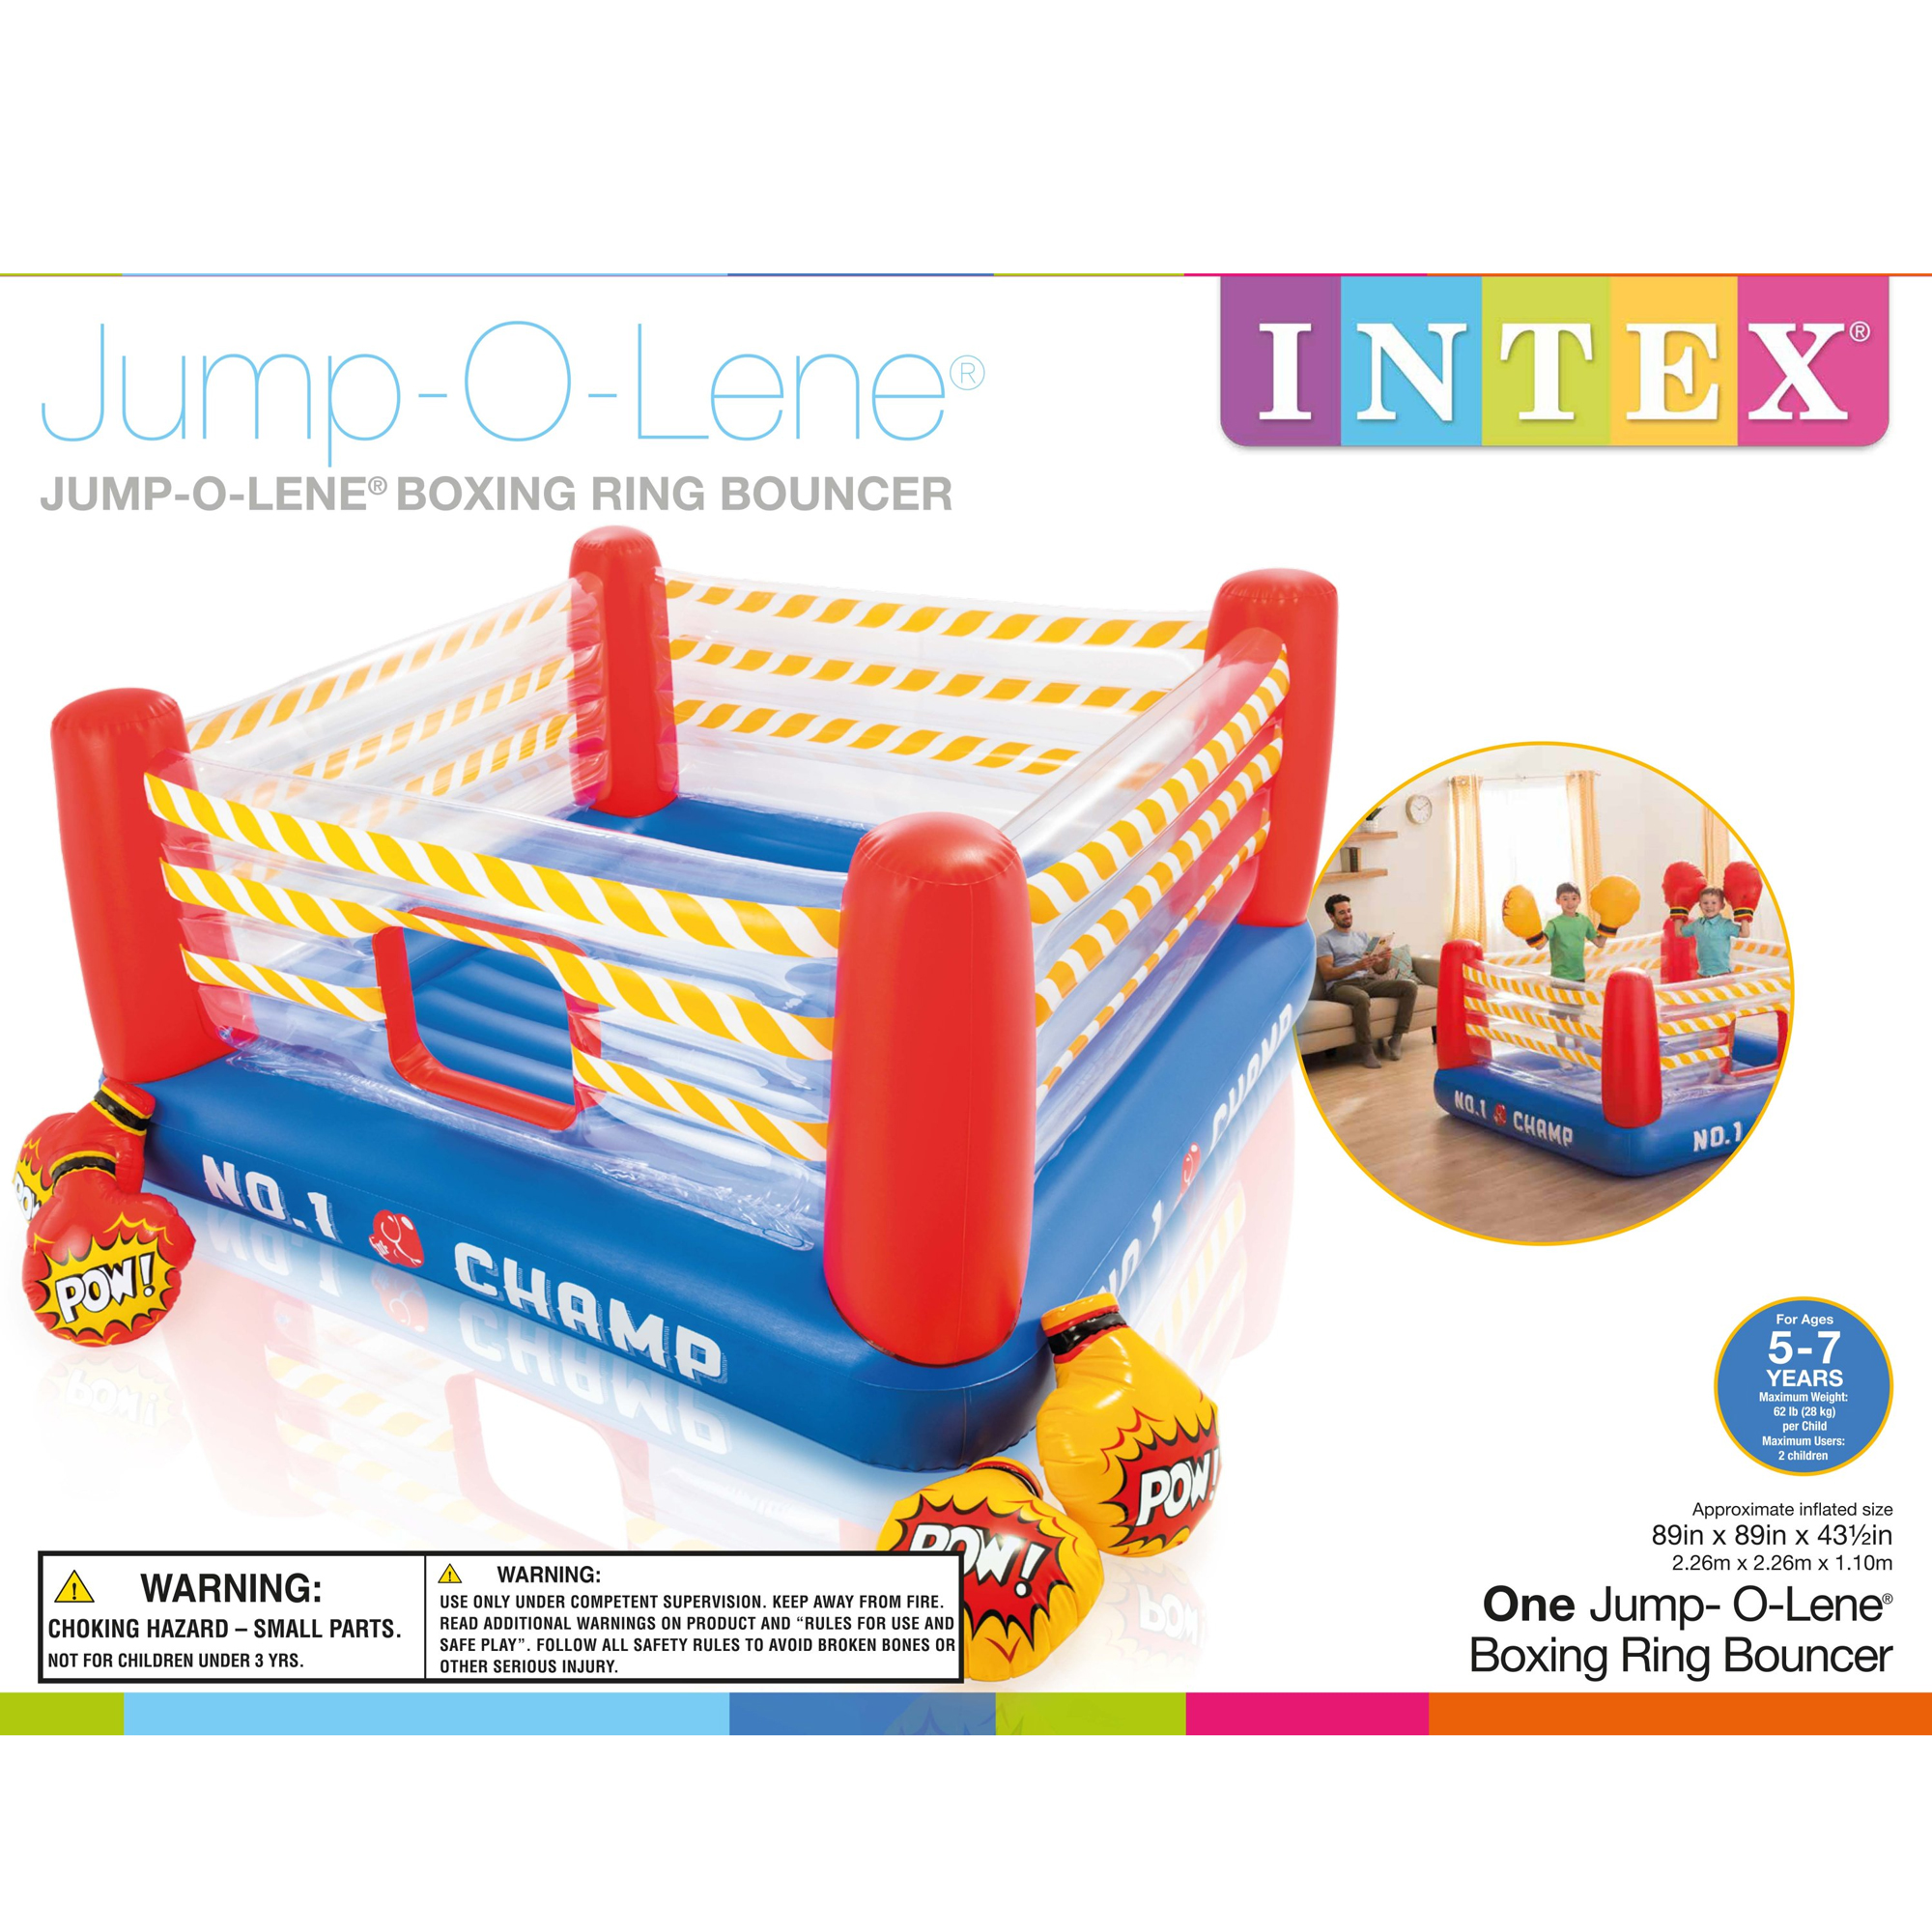 2eb7e0d06 Intex Inflatable Jump-O-Lene 89 Inch Play Boxing Ring Bouncer For ...